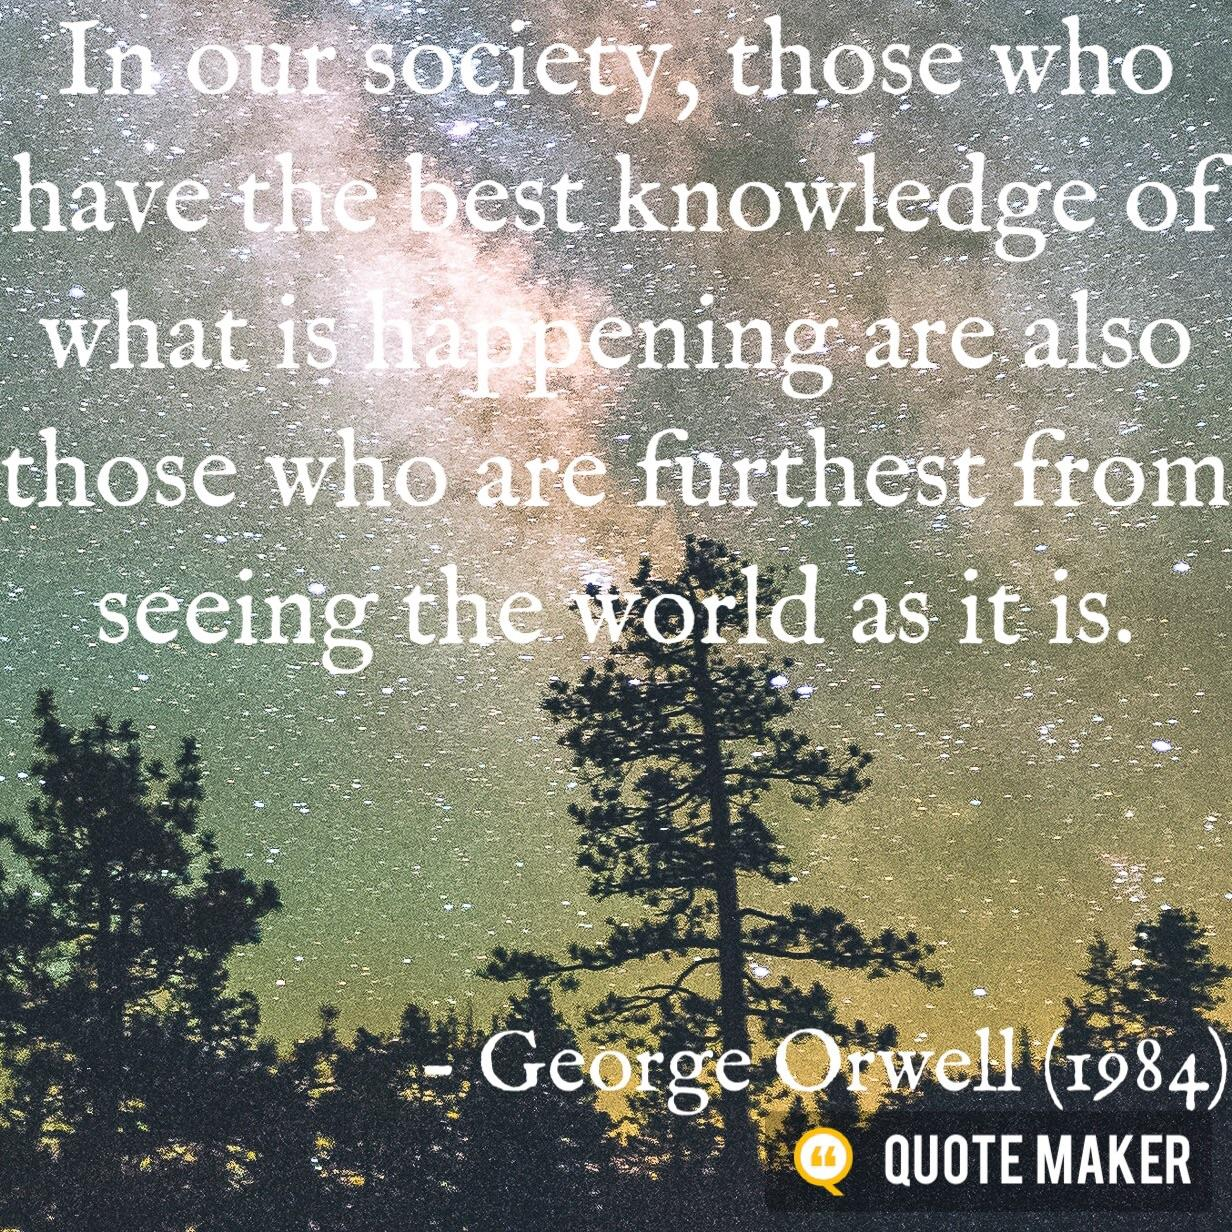 In our society, those who have the best knowledge of what is happening are also those who are furthest from seeing the world as it is. – George Orwell (1984)